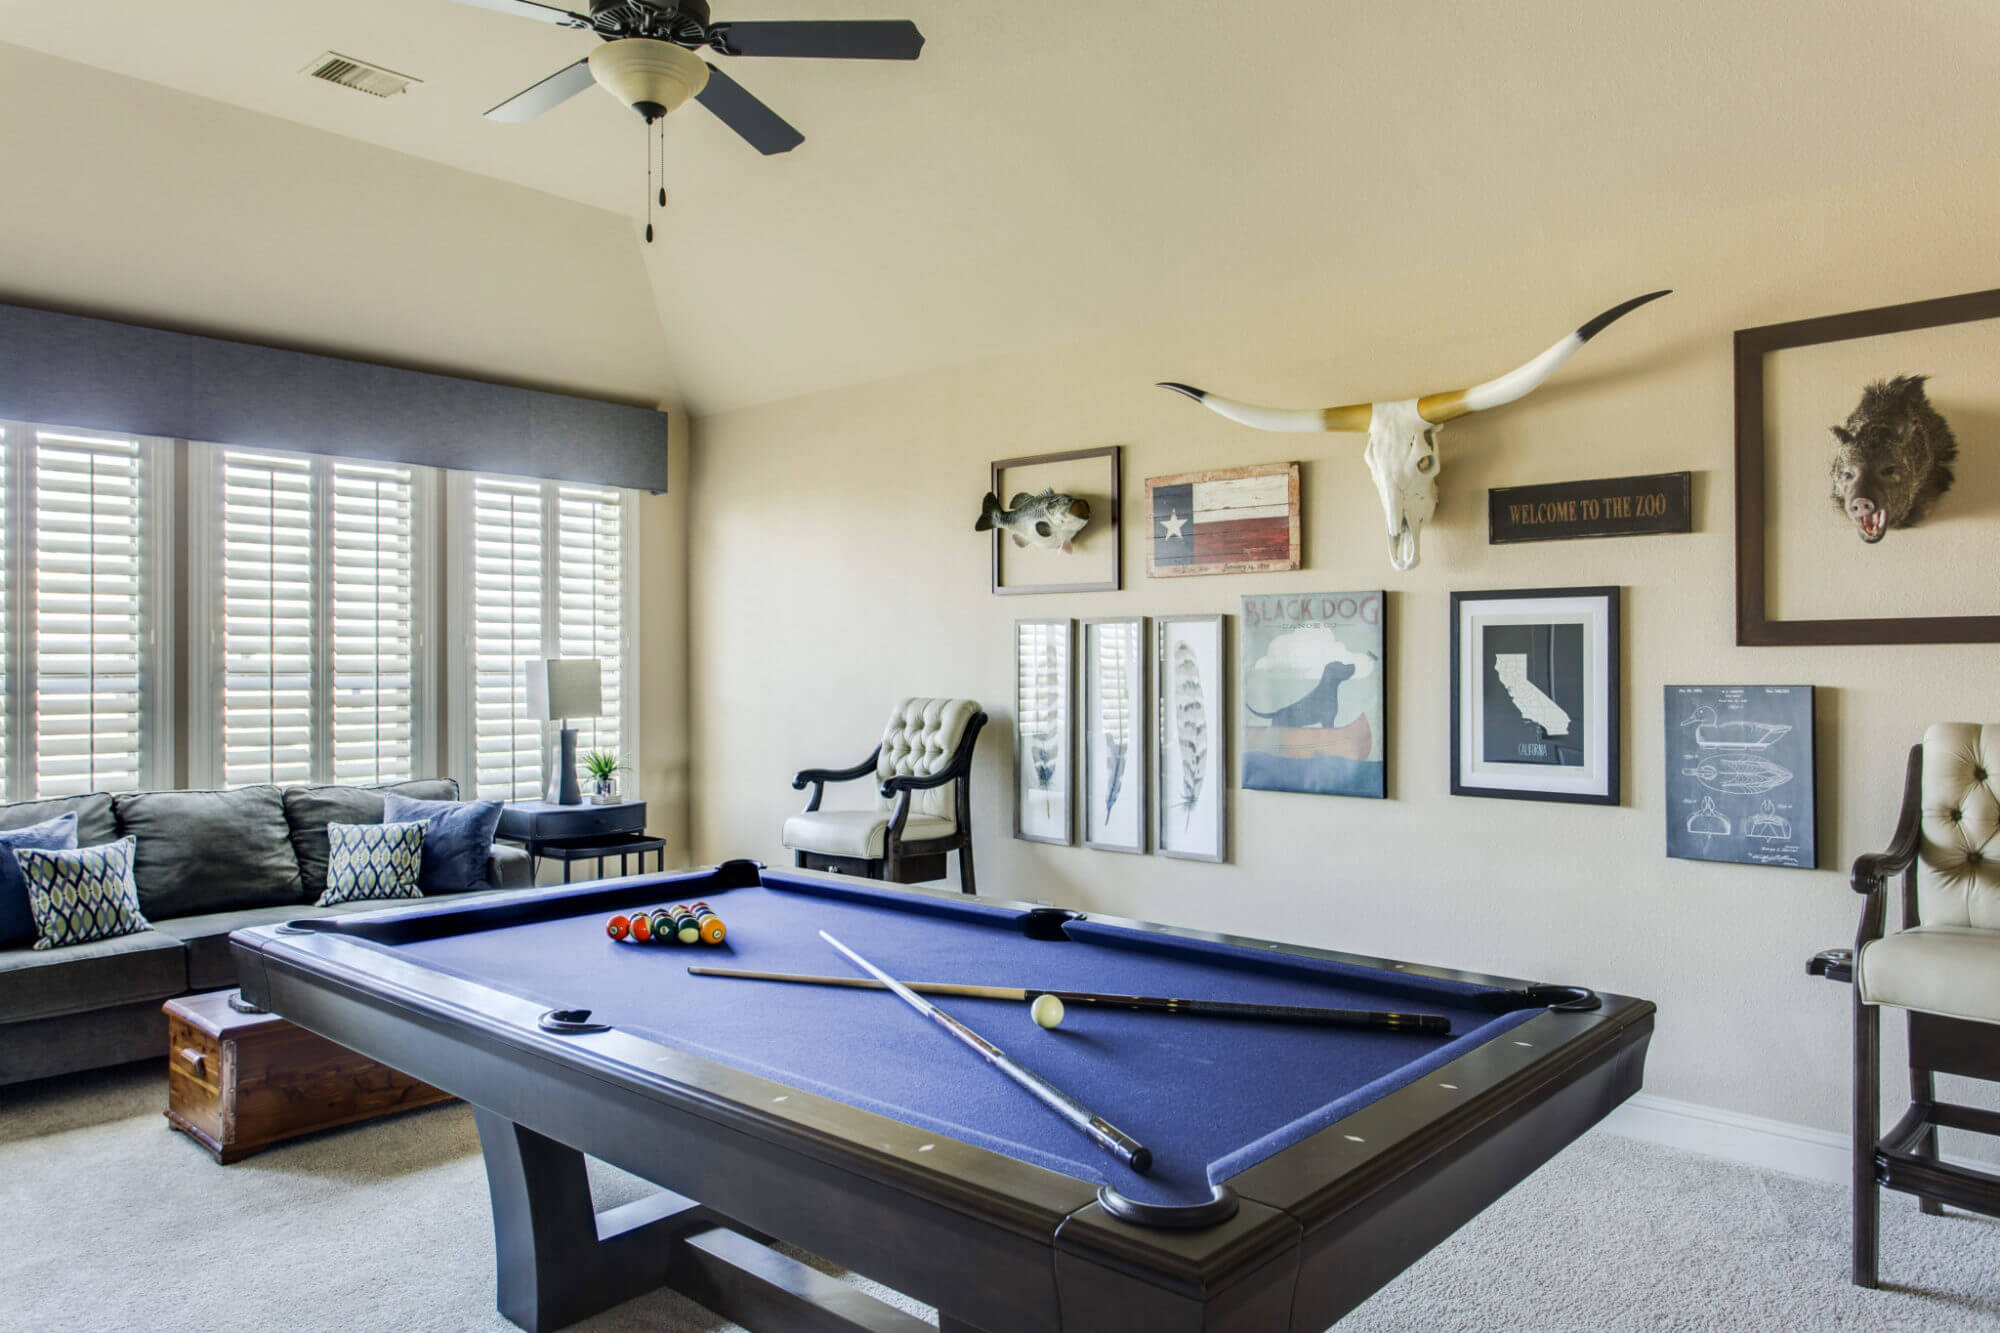 SanClementeDriveFriscoTX Michelle Lynne Interiors Group - Pool table seating